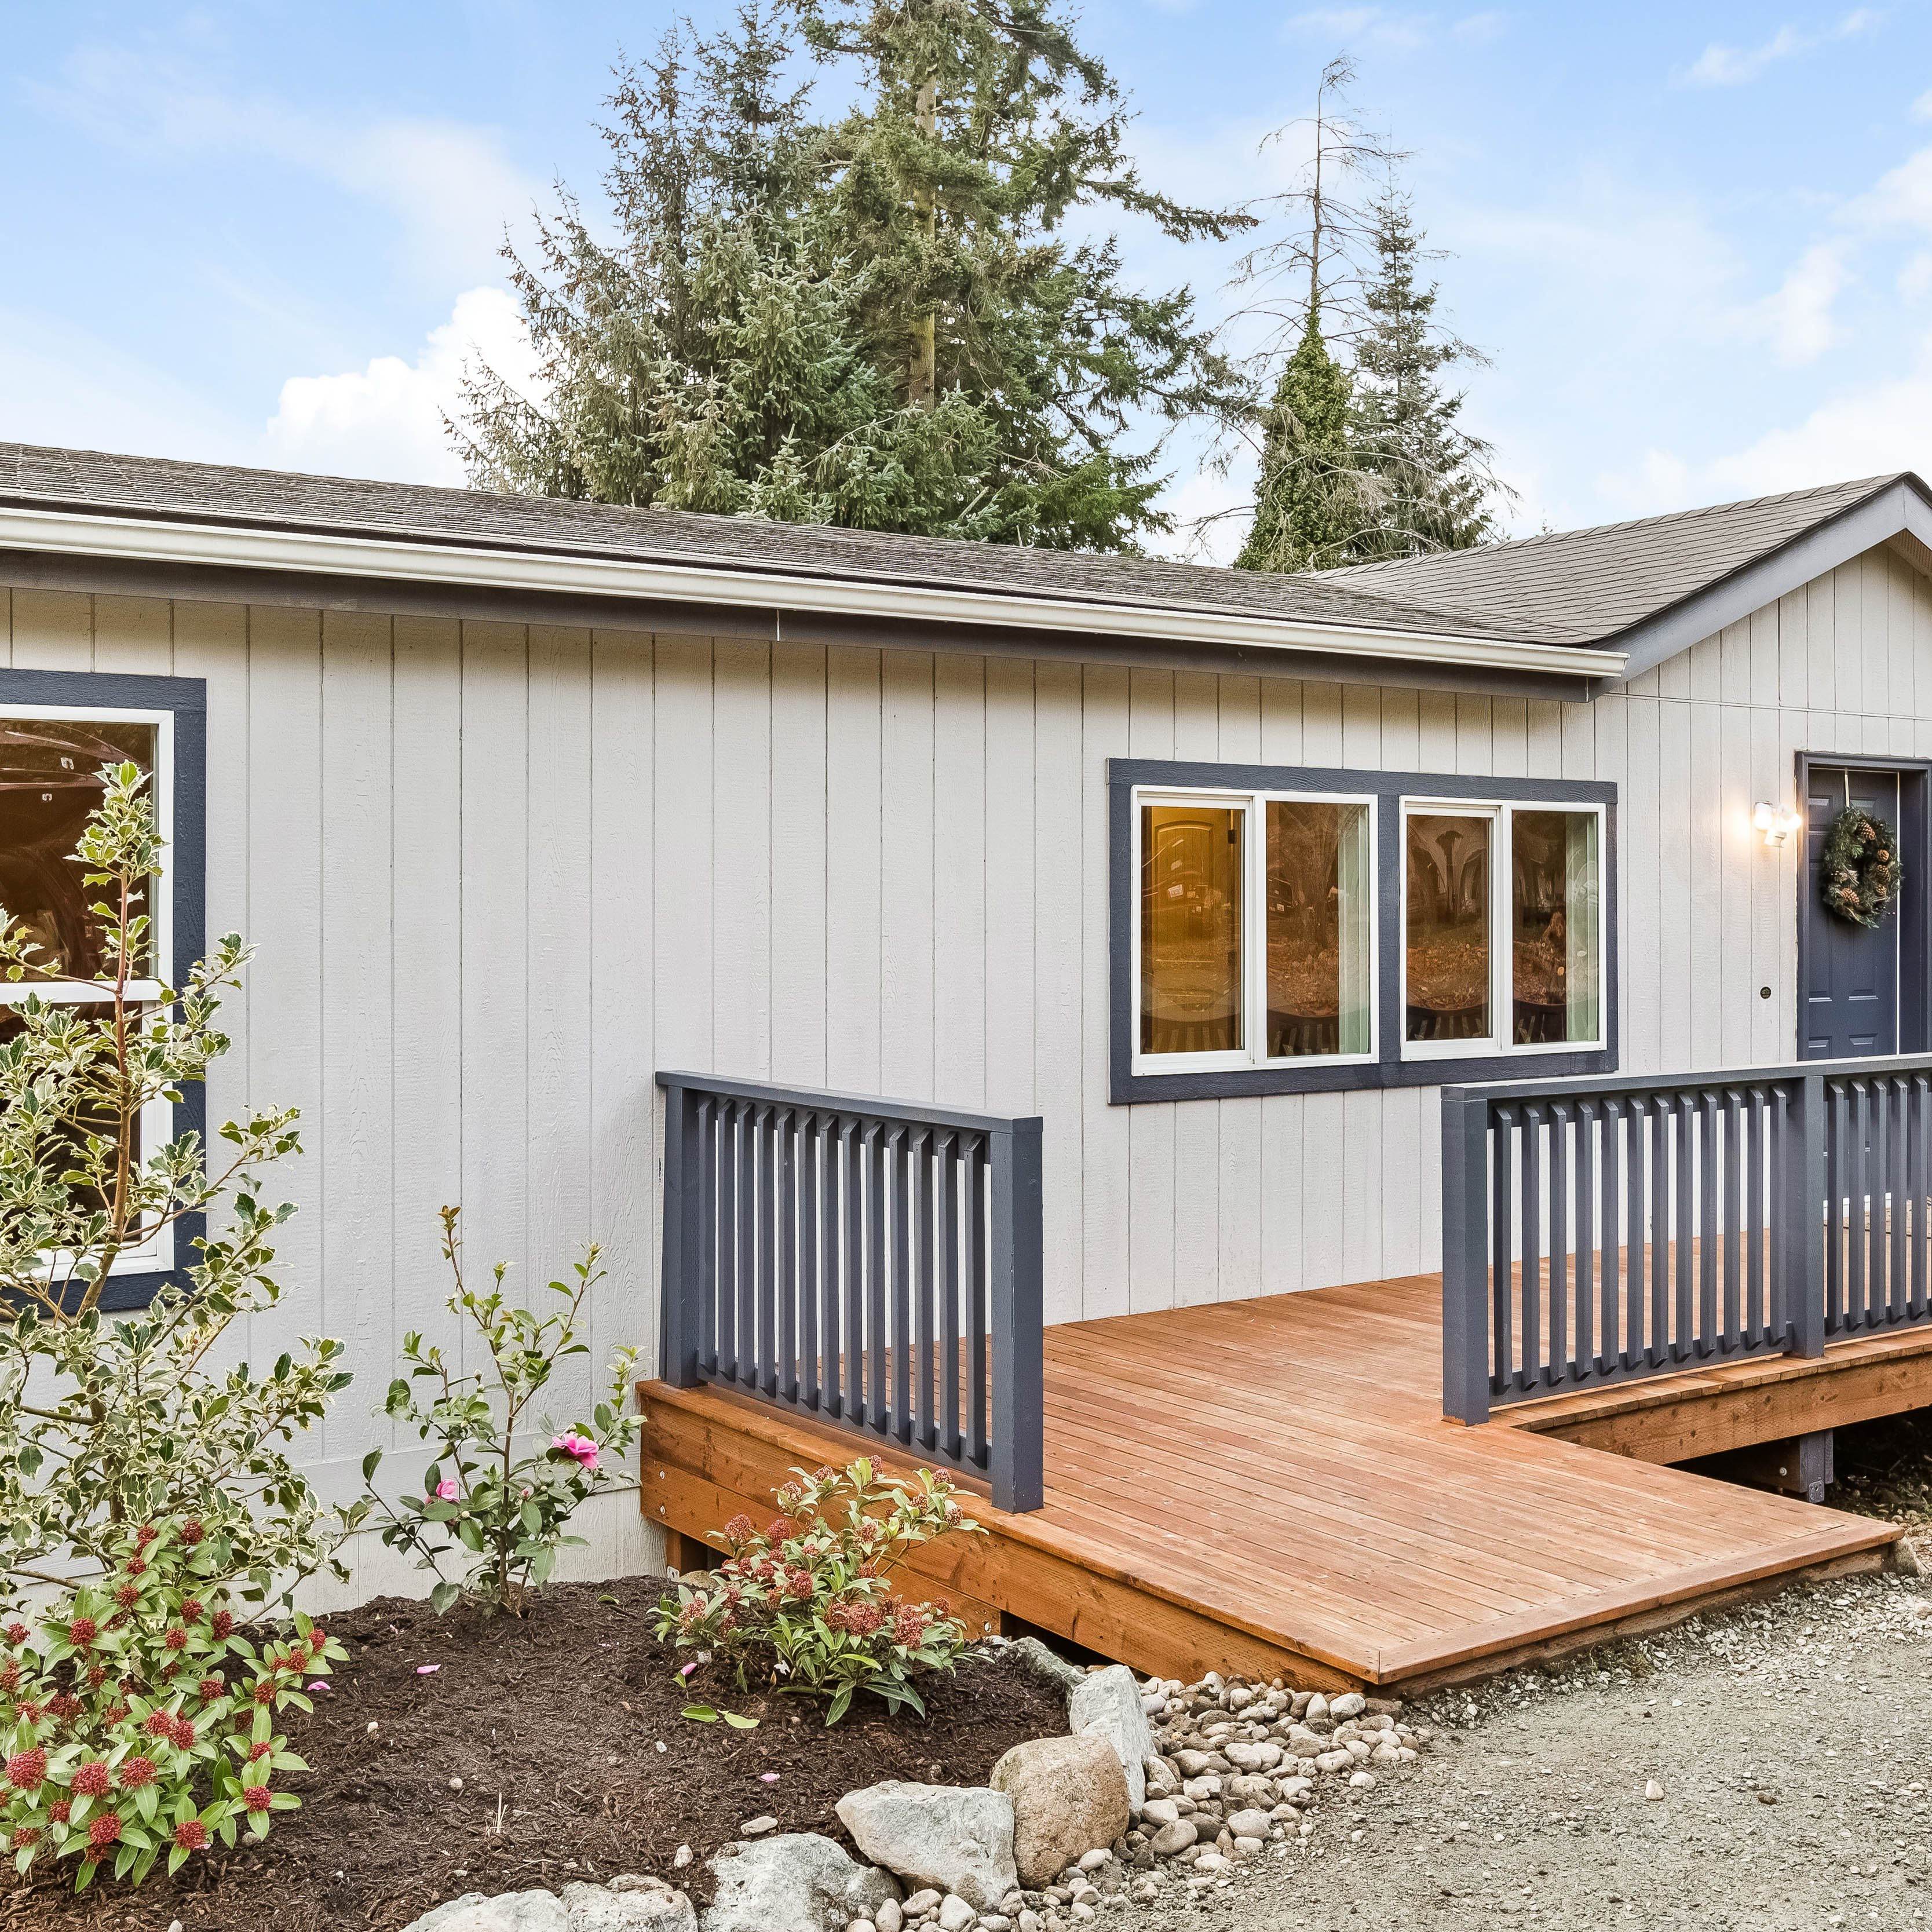 Home in Oak Harbor for Sale